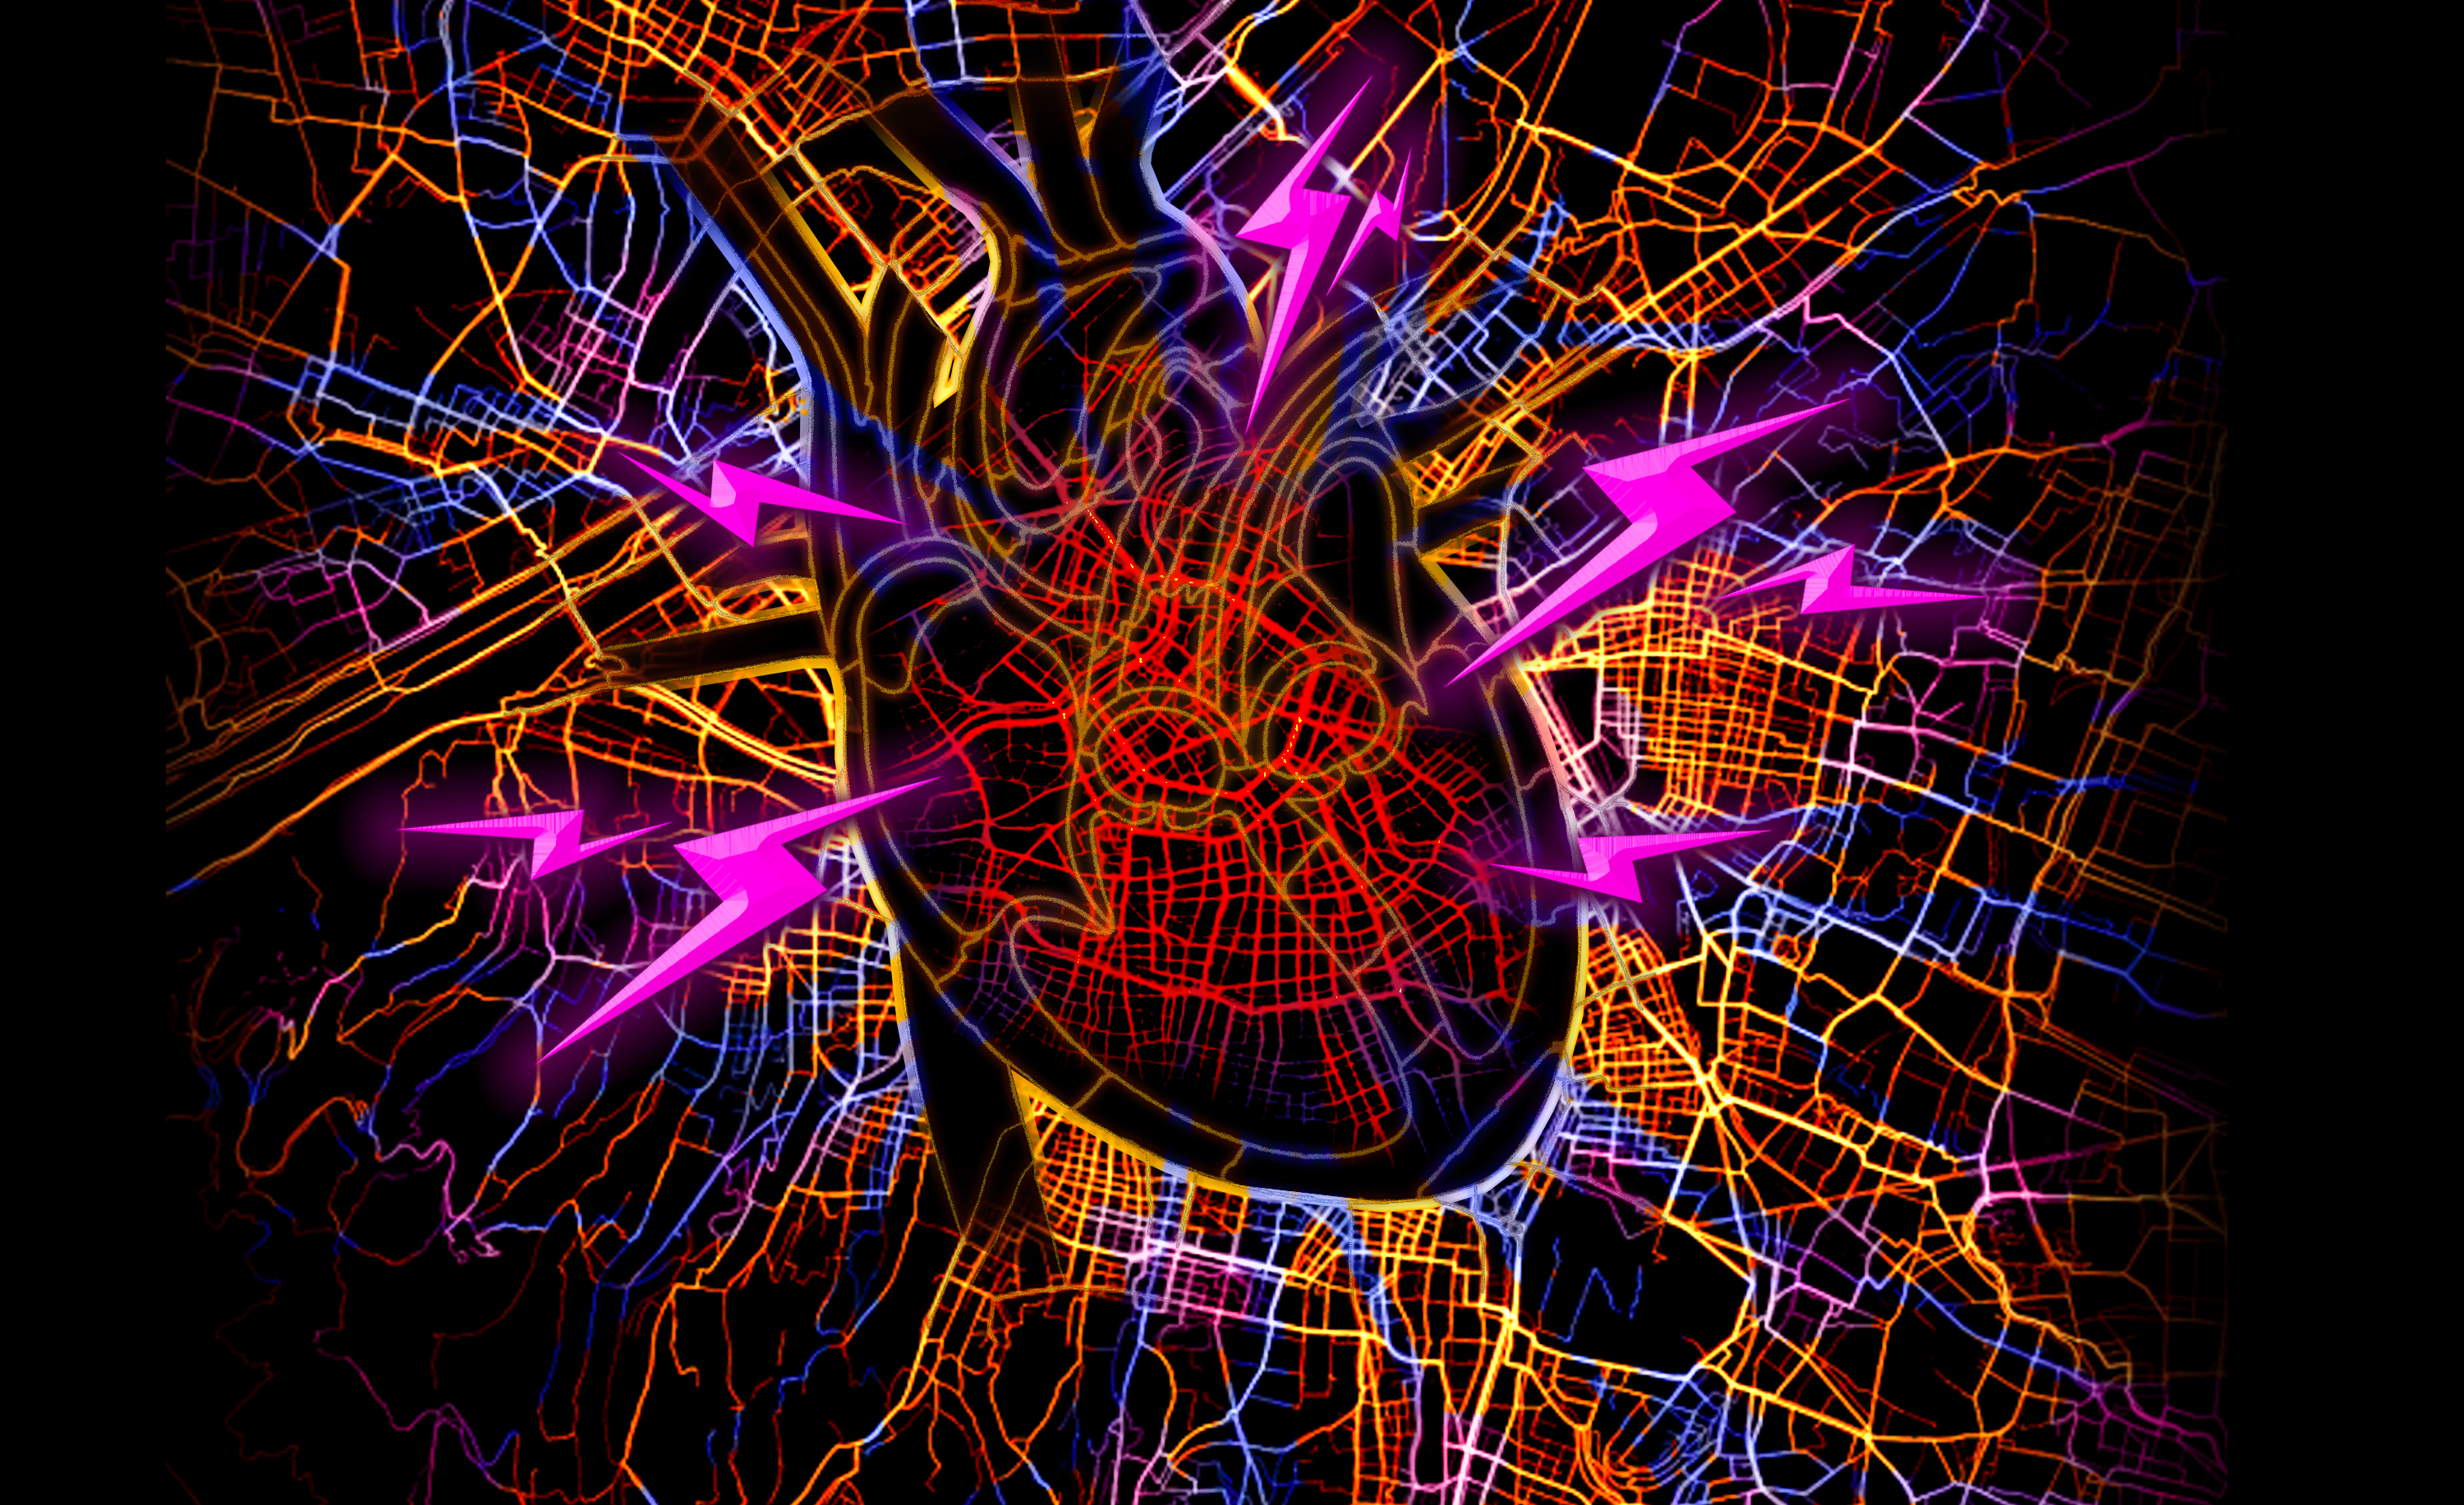 A city roadway heat map with an impression of a human heart in the centre. Electric bolts surround the heart.